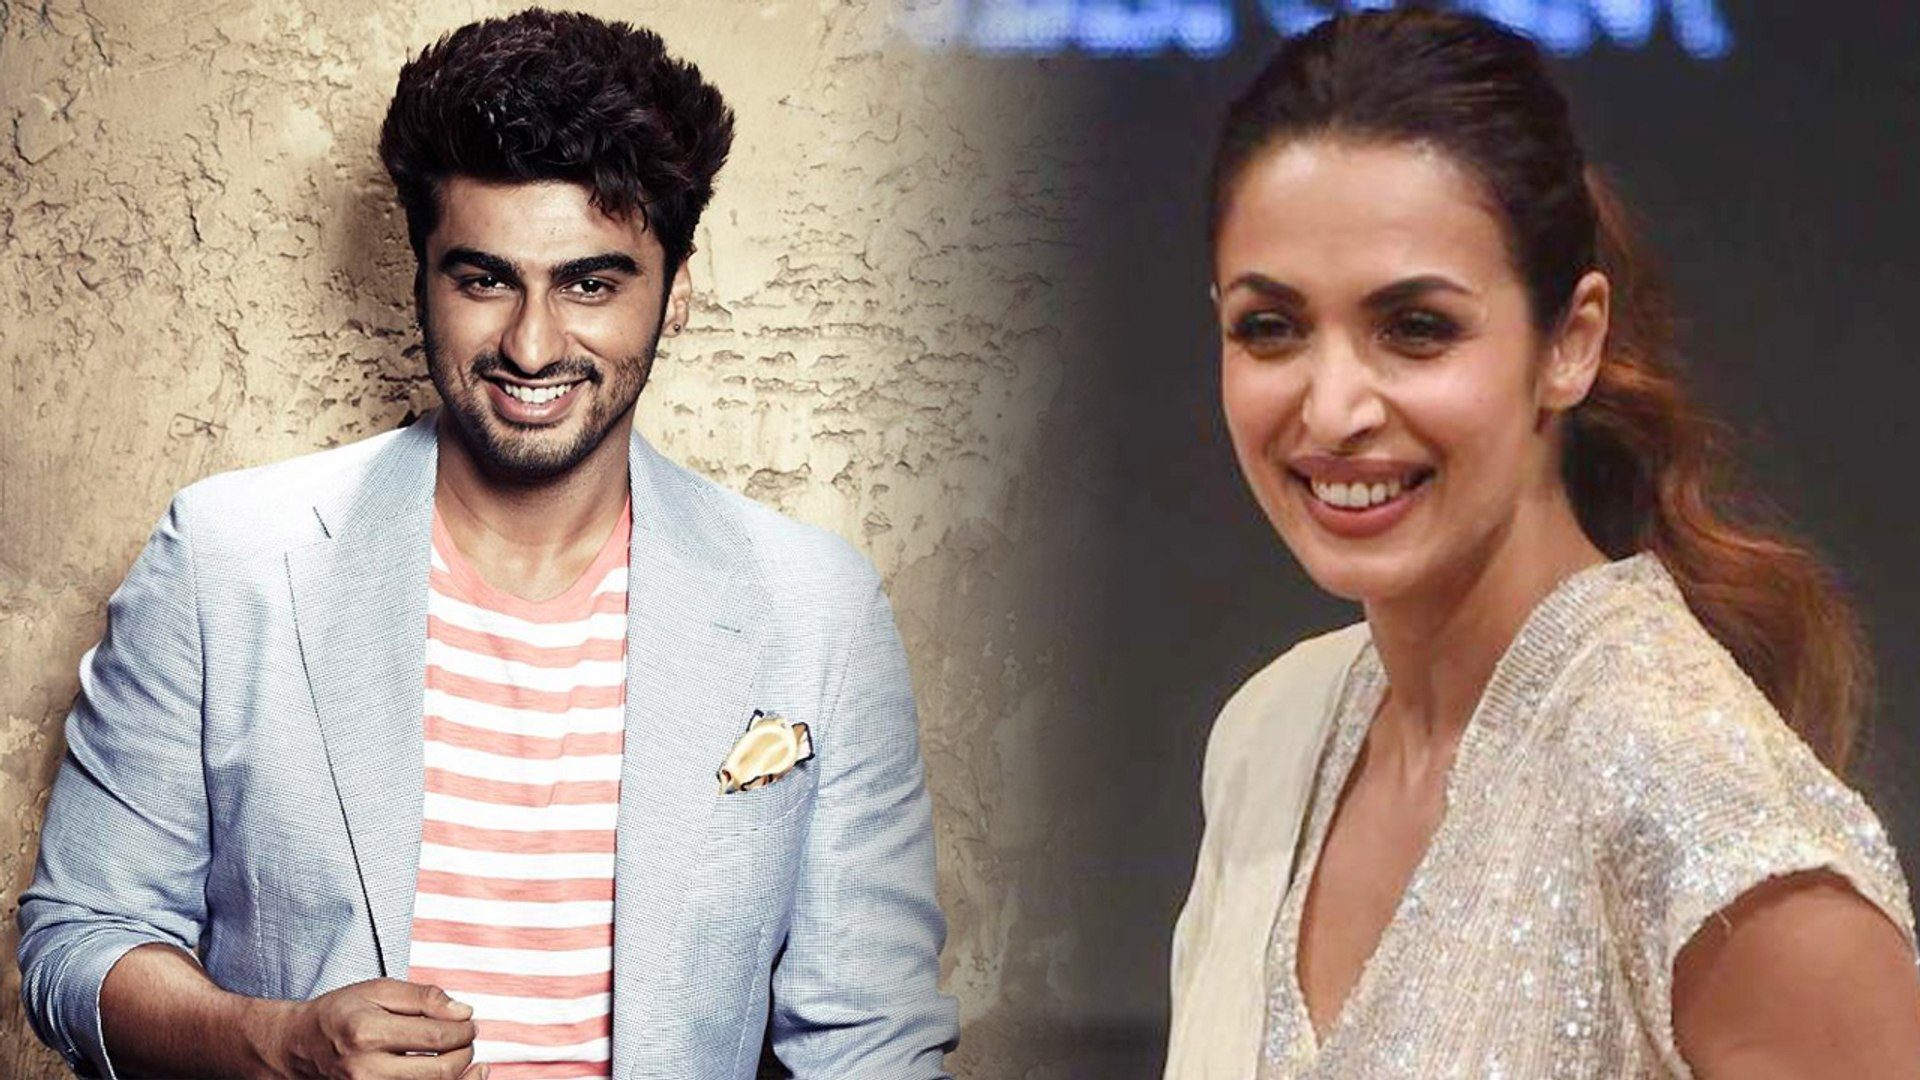 Malaika Arora's cute comment on Arjun Kapoor's Panipat look | FilmiBeat